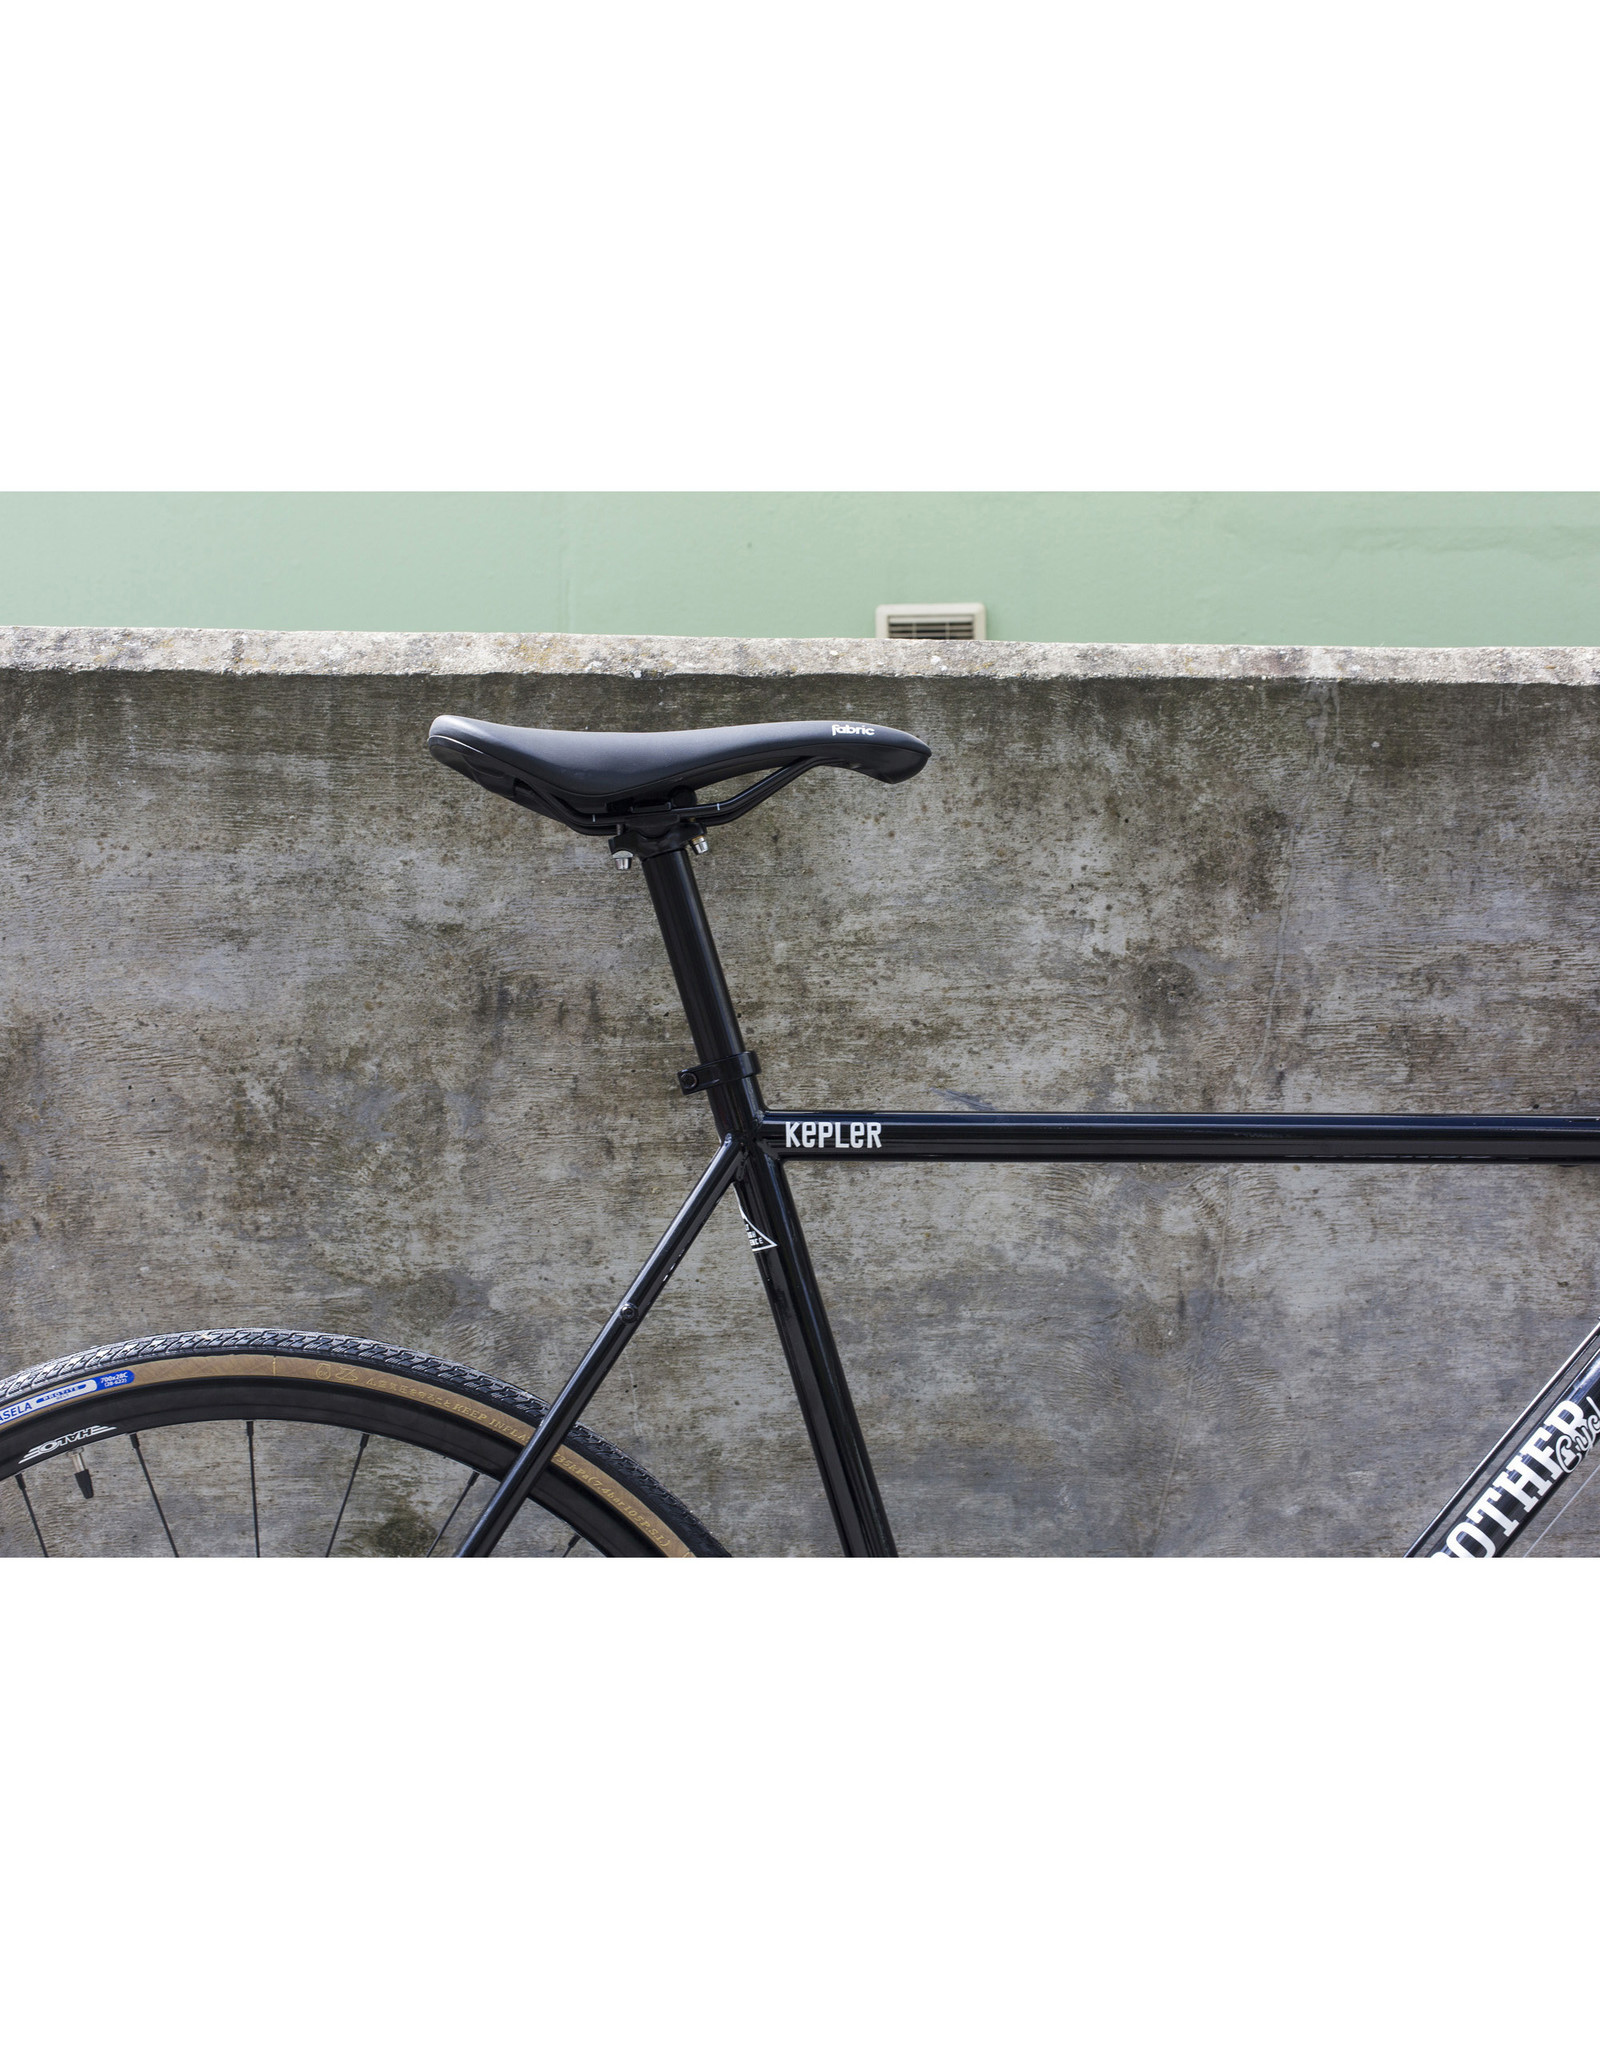 Seabass Cycles Brother Cycles Kepler Disc - Black - Custom Build